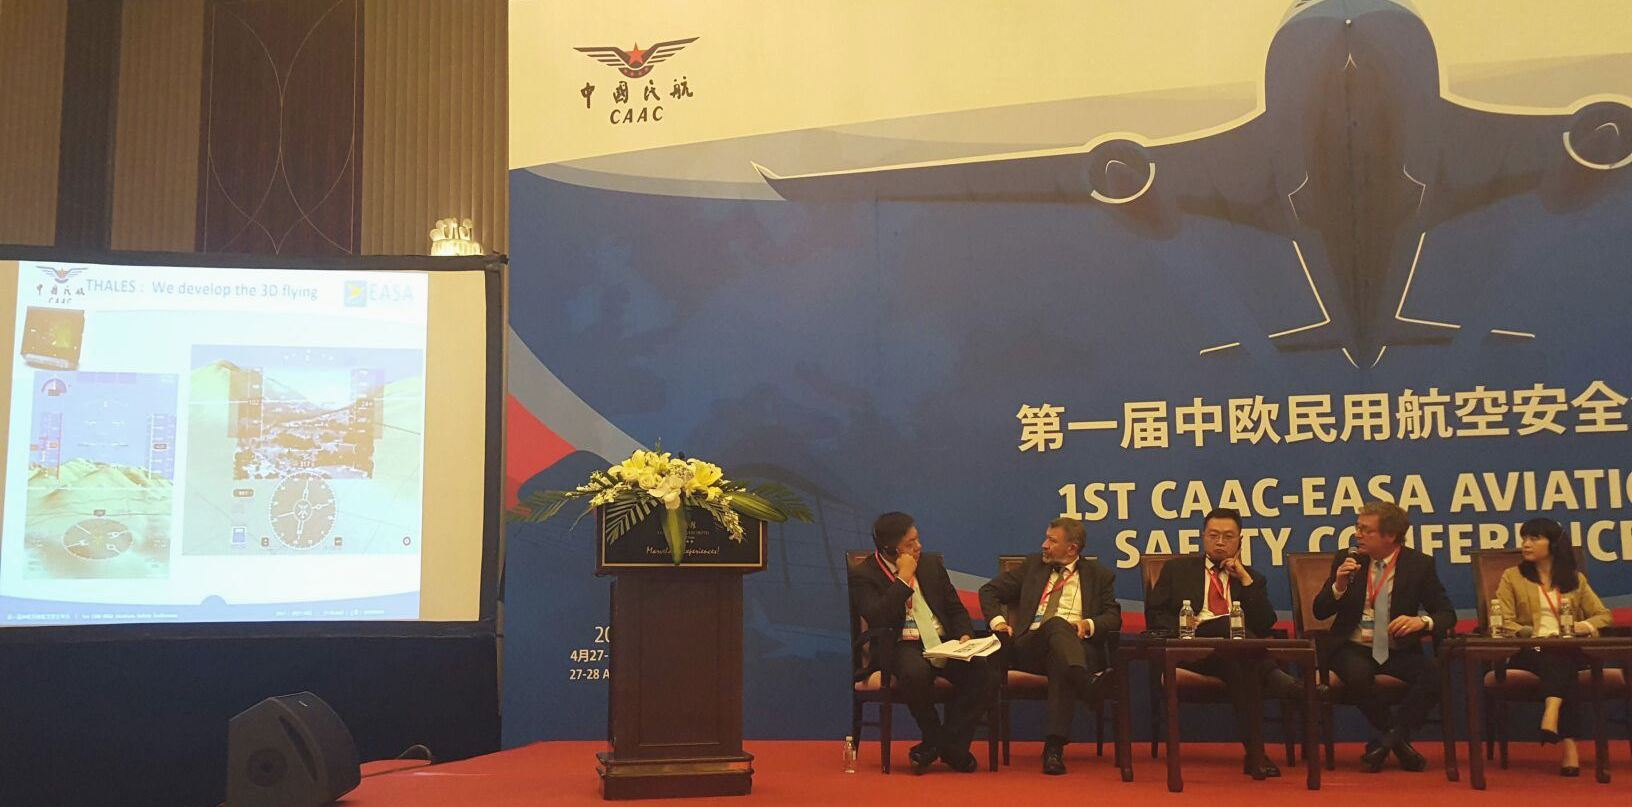 CAAC and EASA promote international aviation safety